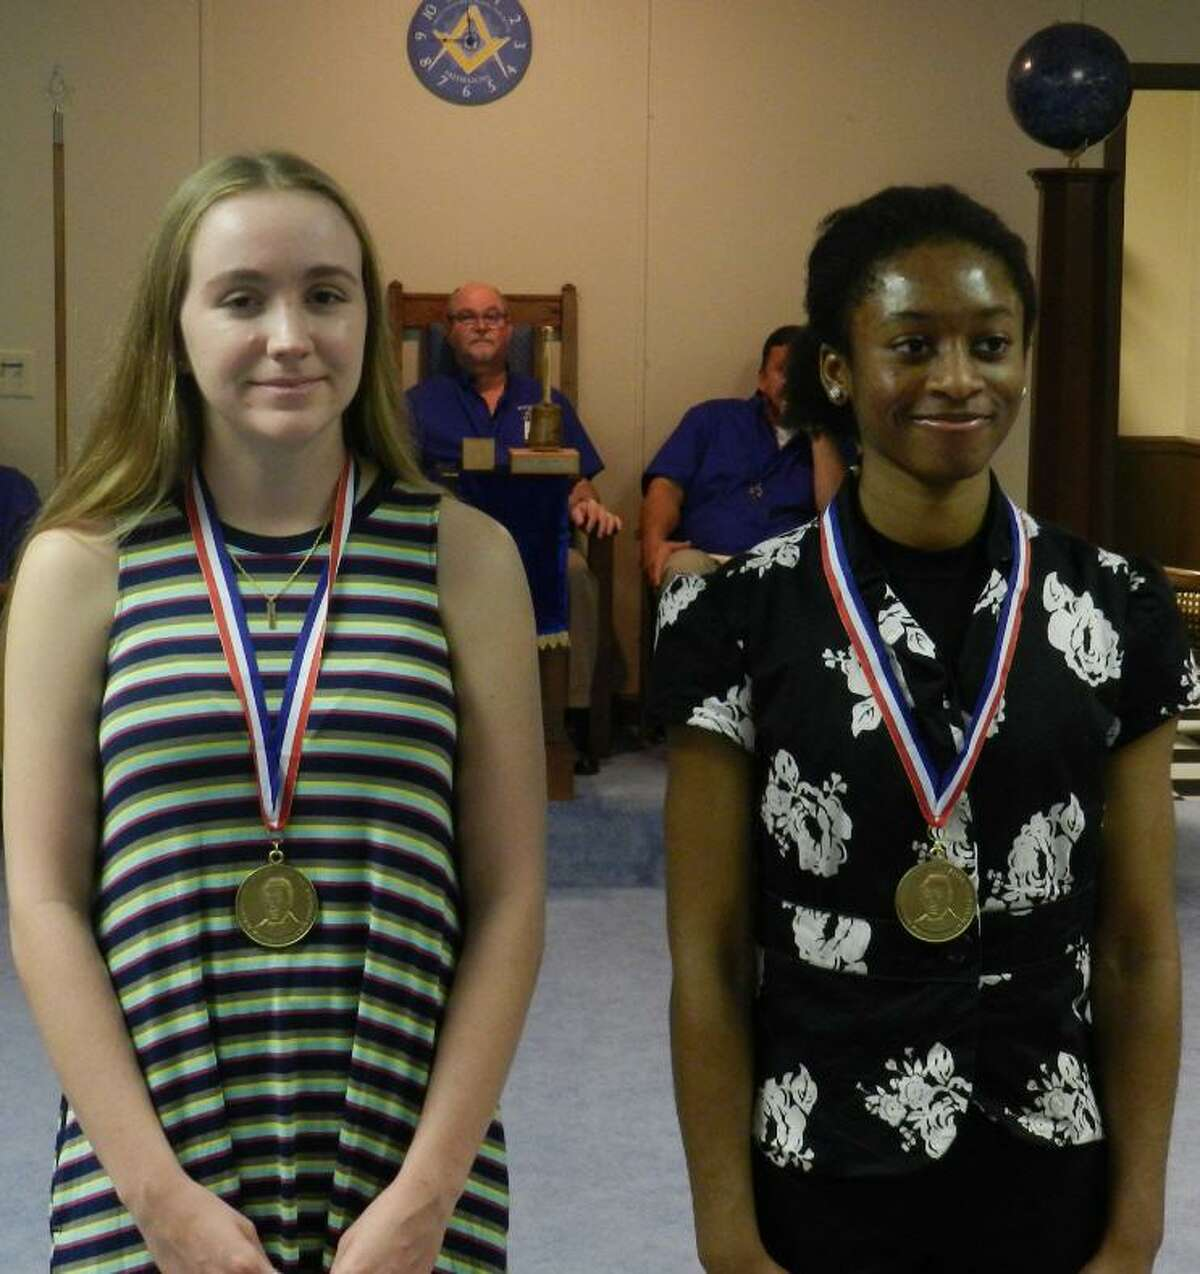 Katy Masonic Lodge 1439 gave away Lamar scholarships on June 29 to Holly Dasher, left, who graduated from Cinco Ranch High School, and Nkemasom Nwadei, who graduated from Seven Lakes High School. Each scholarship totaled $1,000. Nwadei plans to attend Texas A& University. Dasher plans to attend Mary Hardin Baylor. The scholarship is named after Mirabeau B. Lamar, a Mason, who became president of the Republic of Texas.